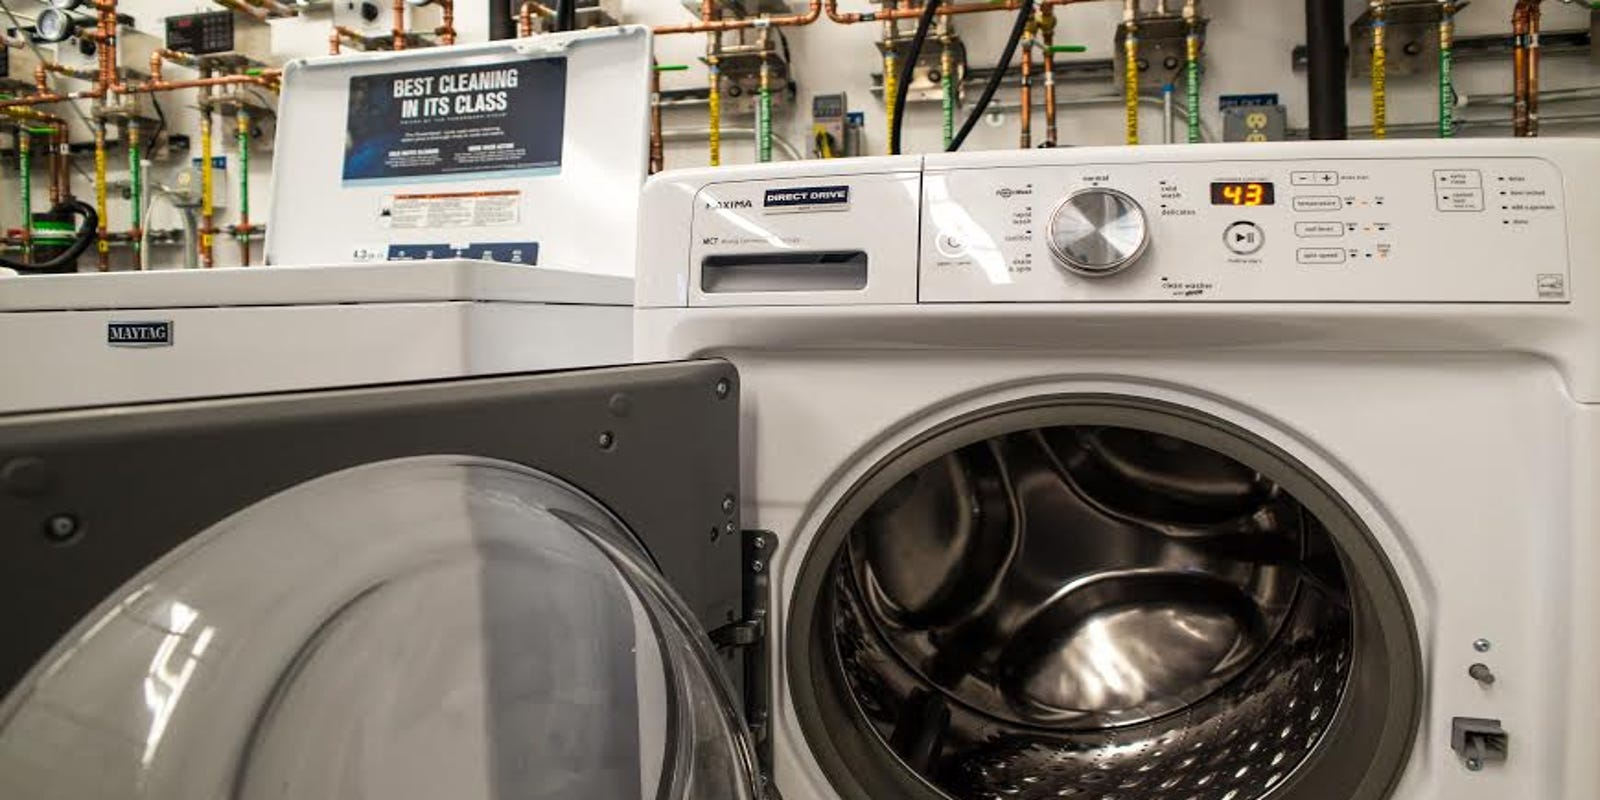 The great washer debate: Are front-loaders really better?